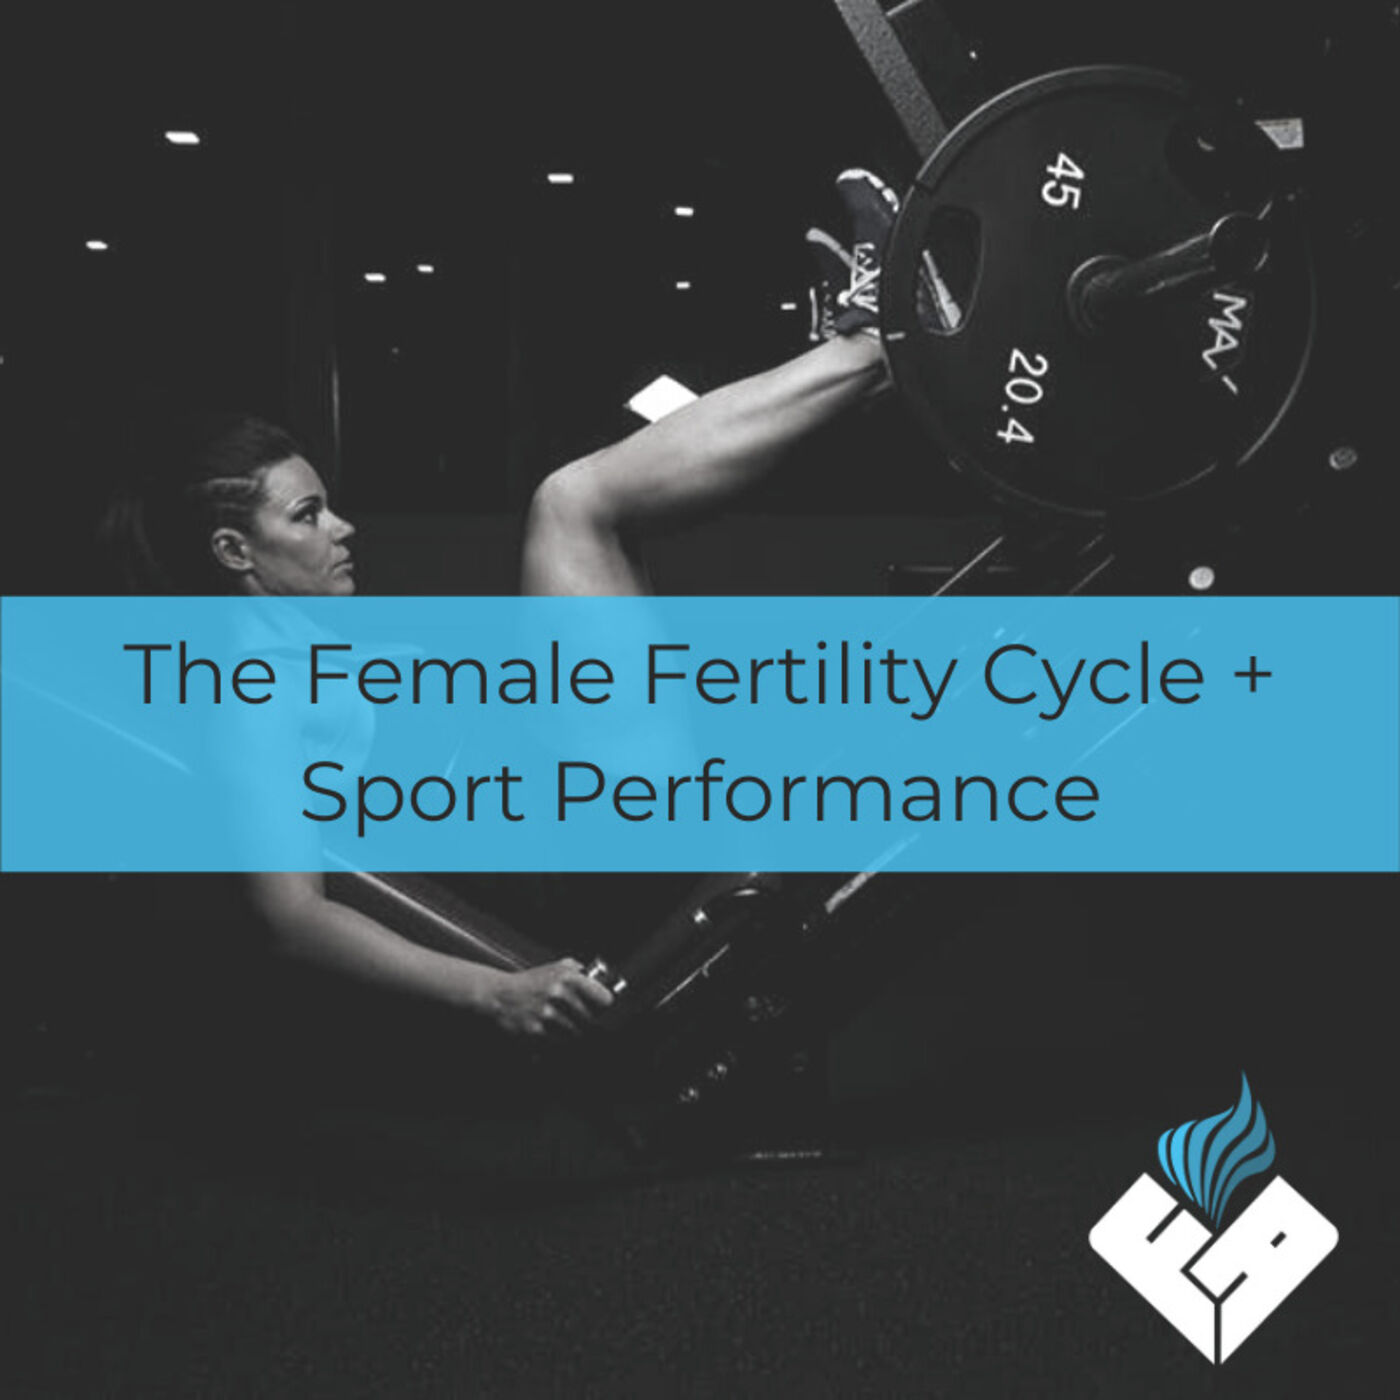 The Female Fertility Cycle + Sport Performance